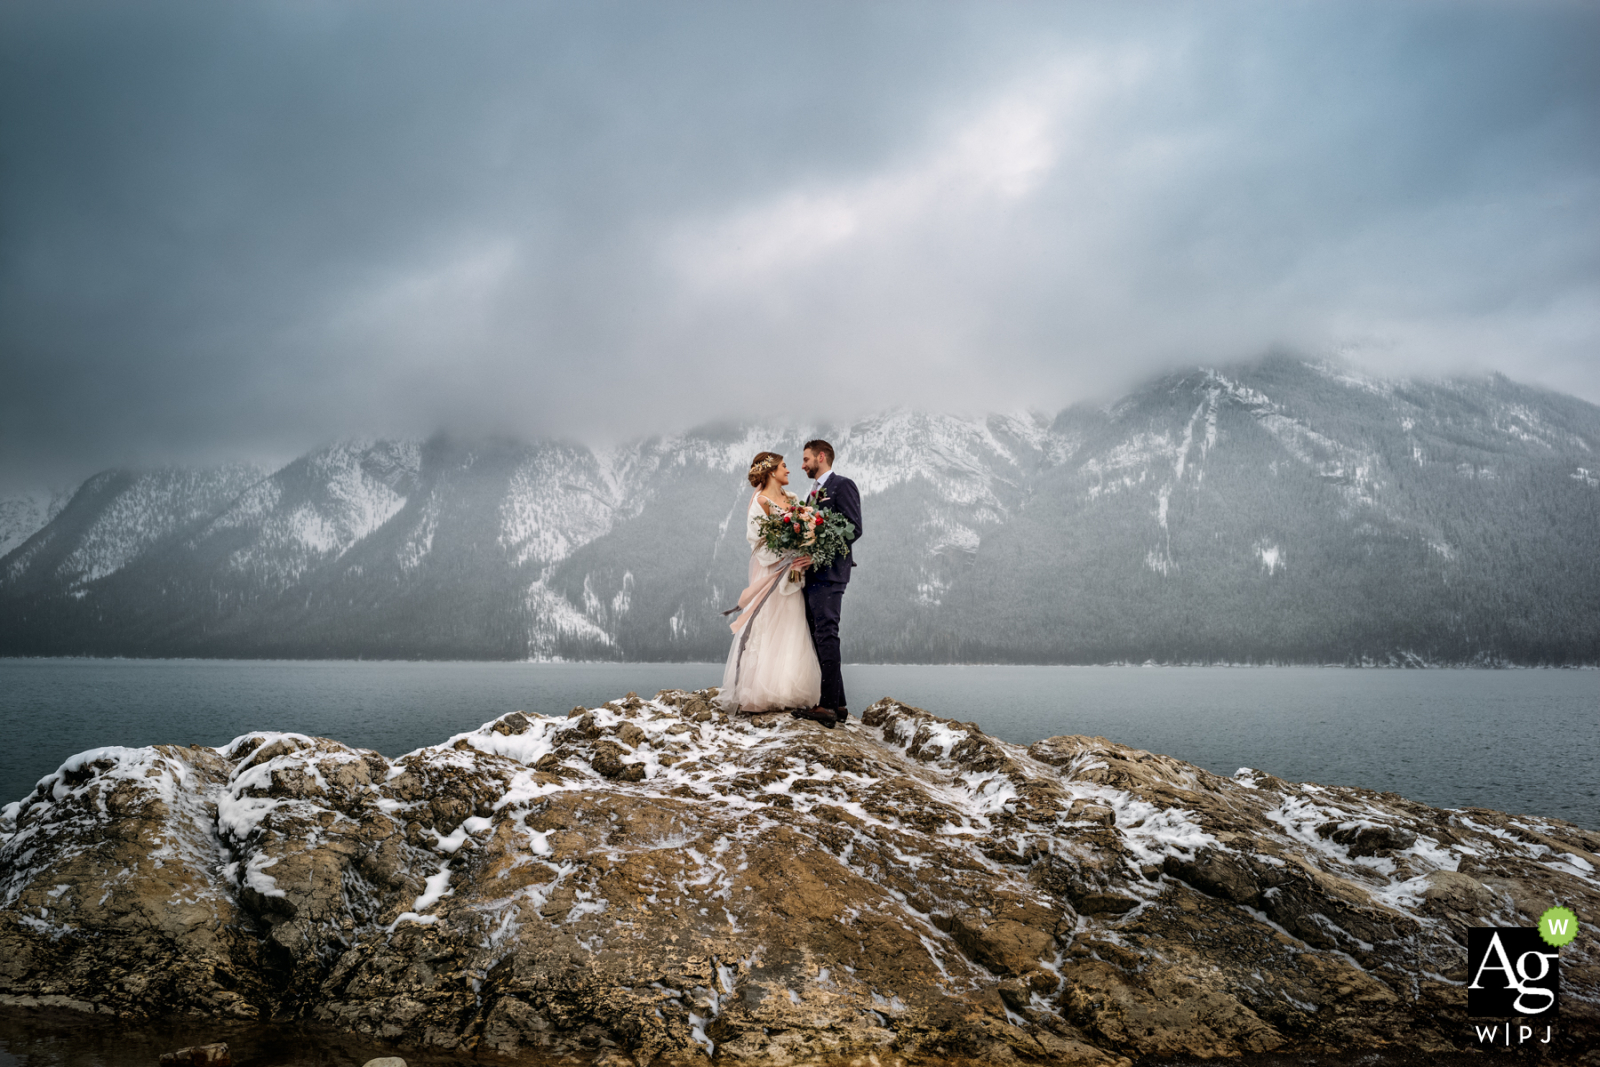 Lake Minnewanka, Banff National Park, AB, Canada wedding couple posed portrait session of the bride and groom holding each other amongst the snow-capped mountains